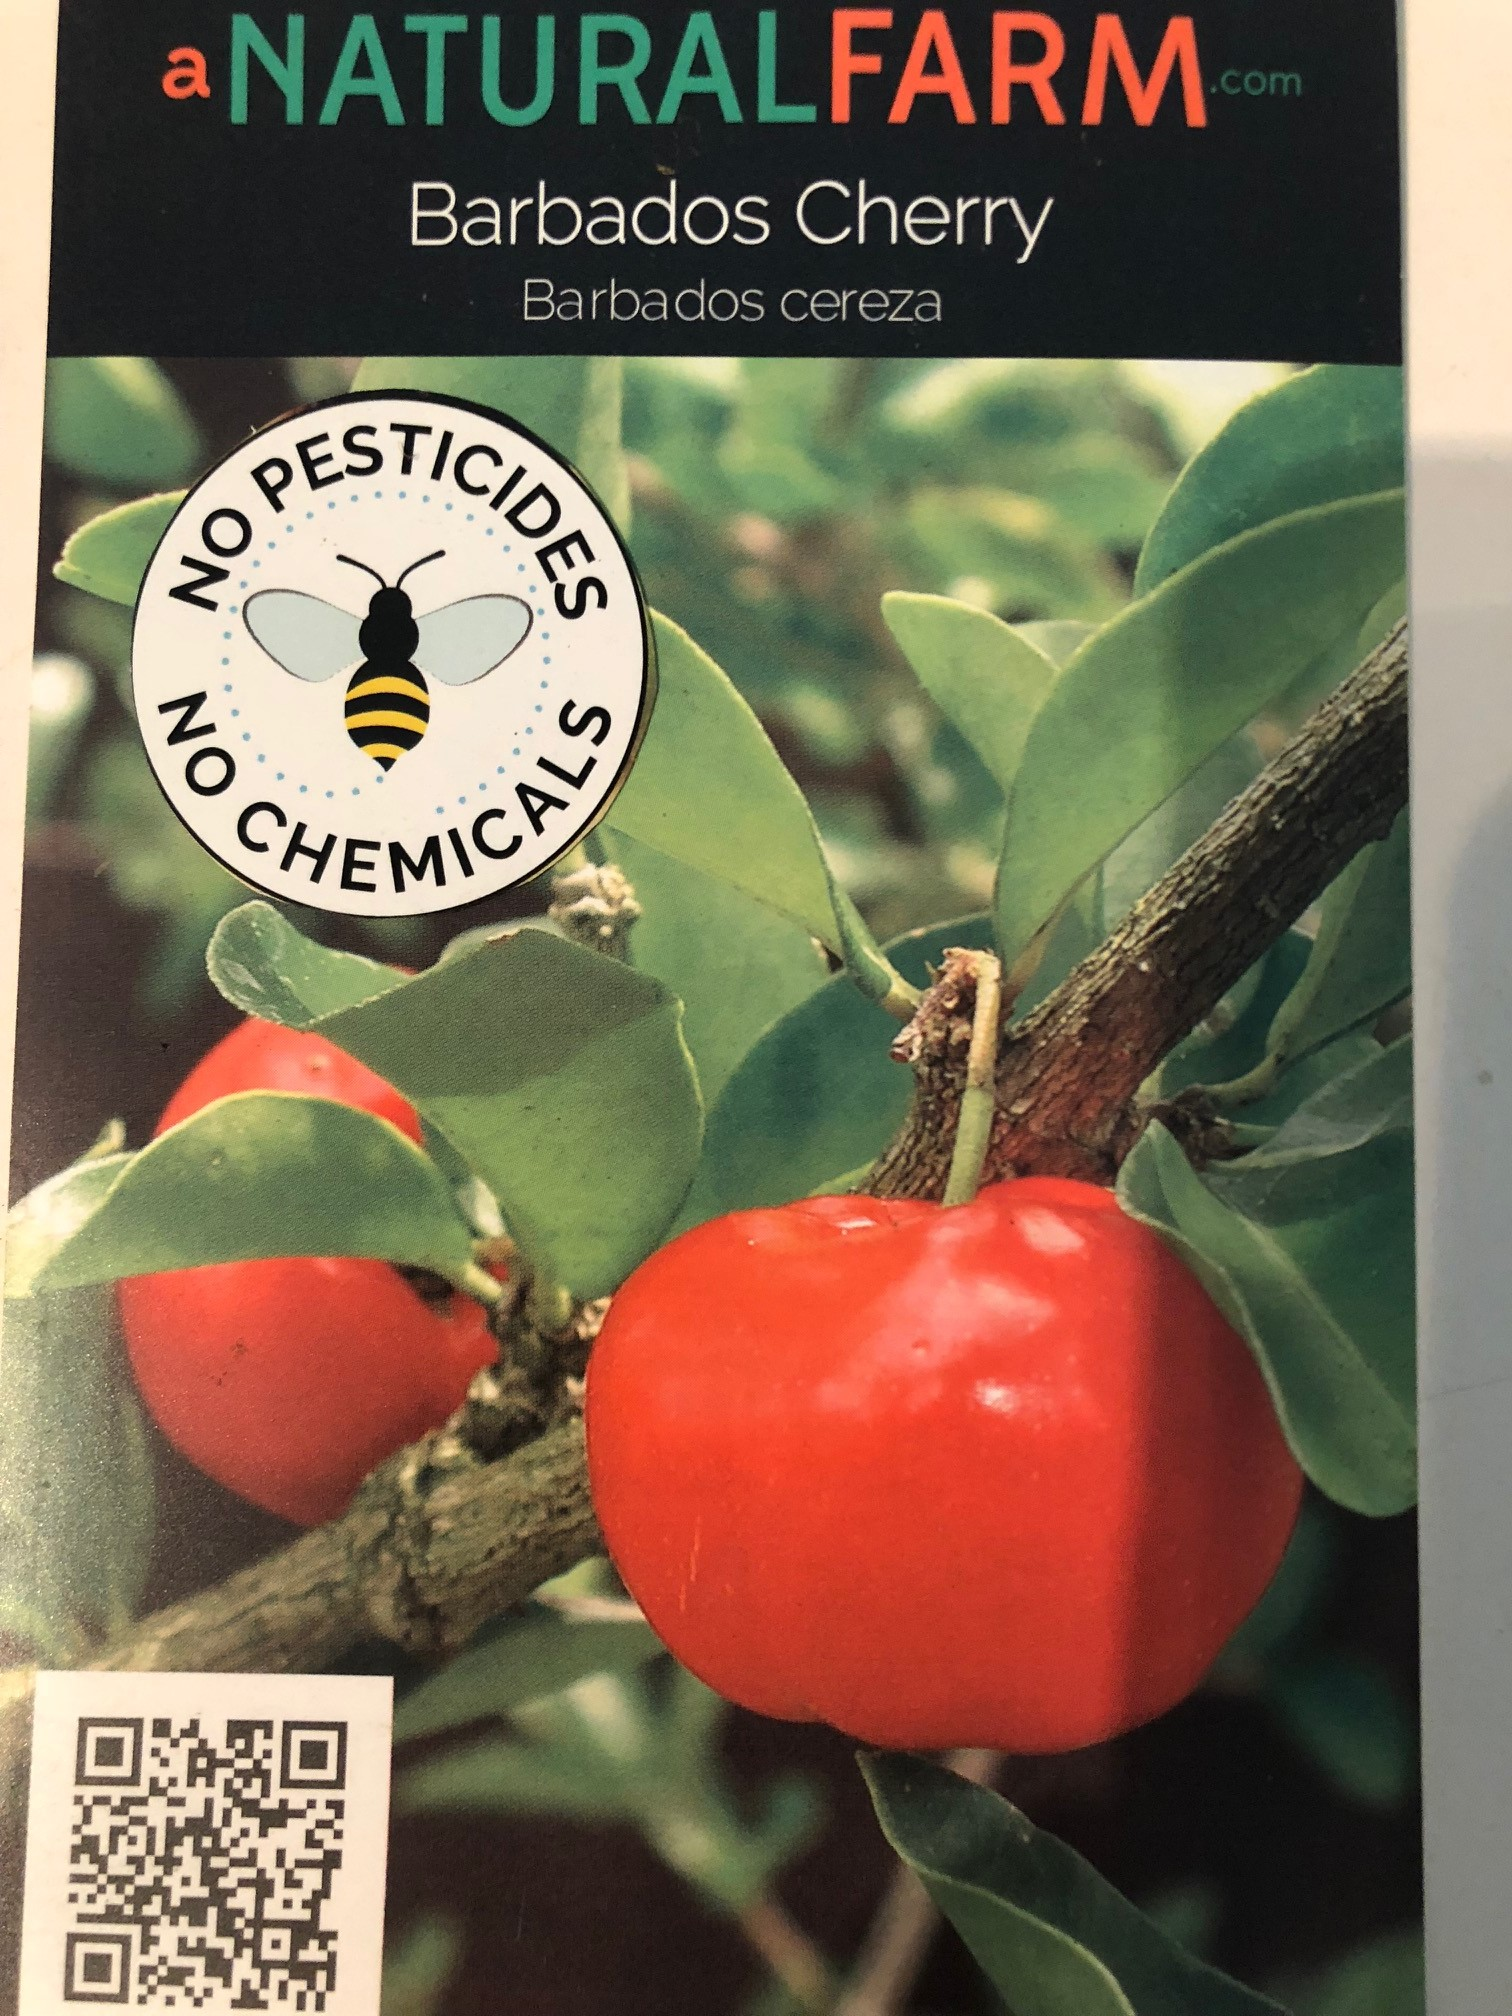 Barbados Cherry — A Natural Farm